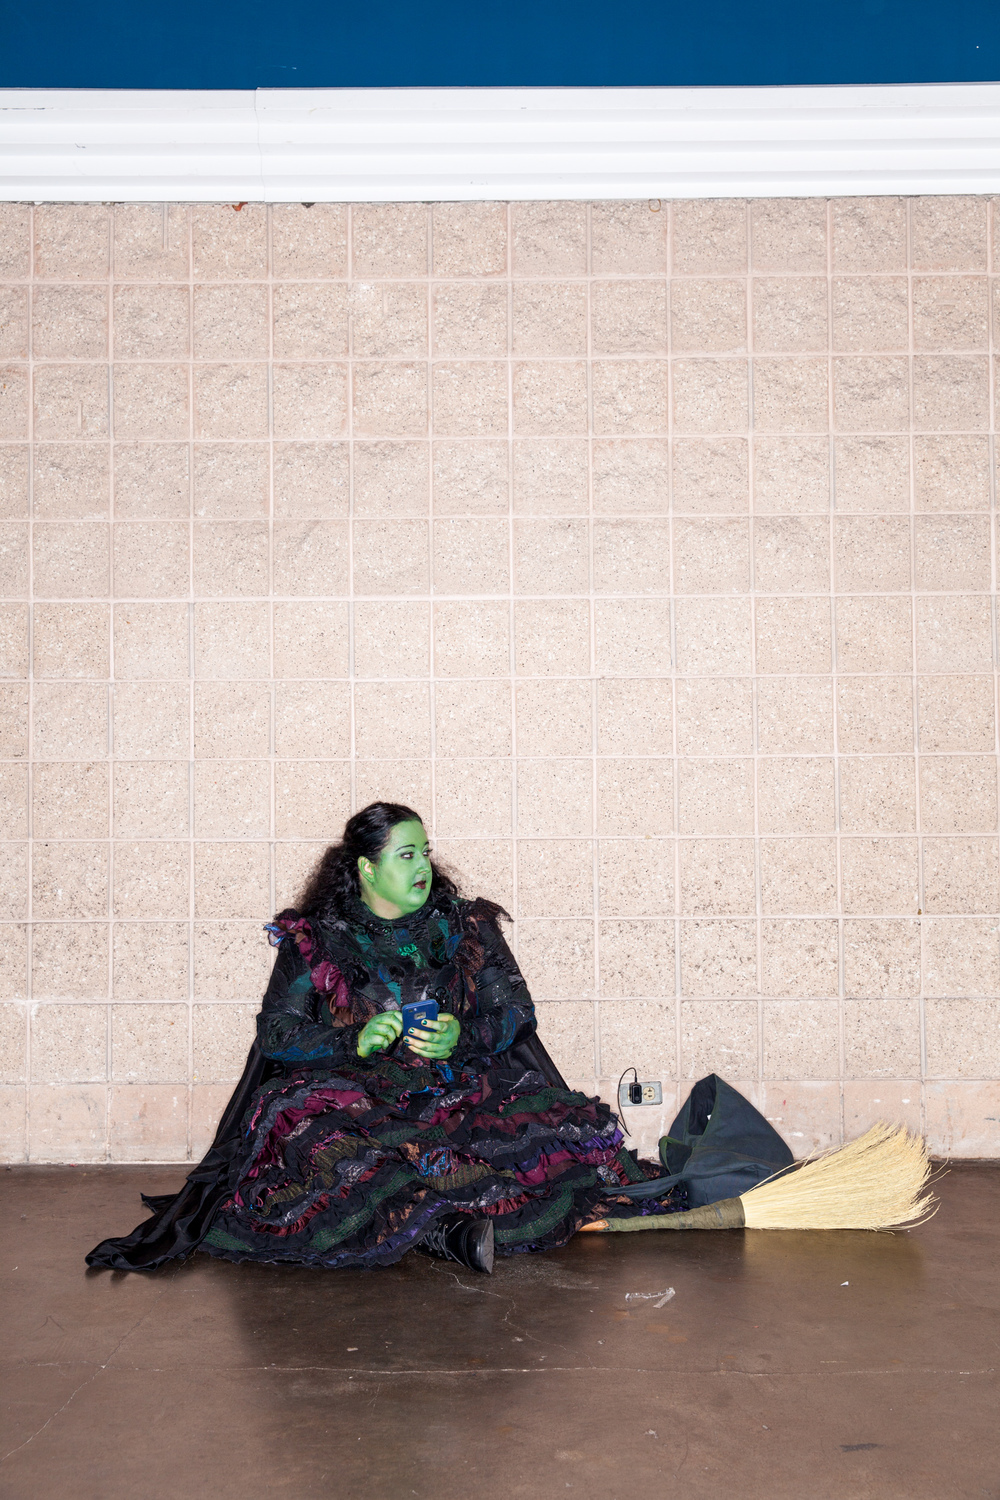 wizard of oz comic con wicked witch rest